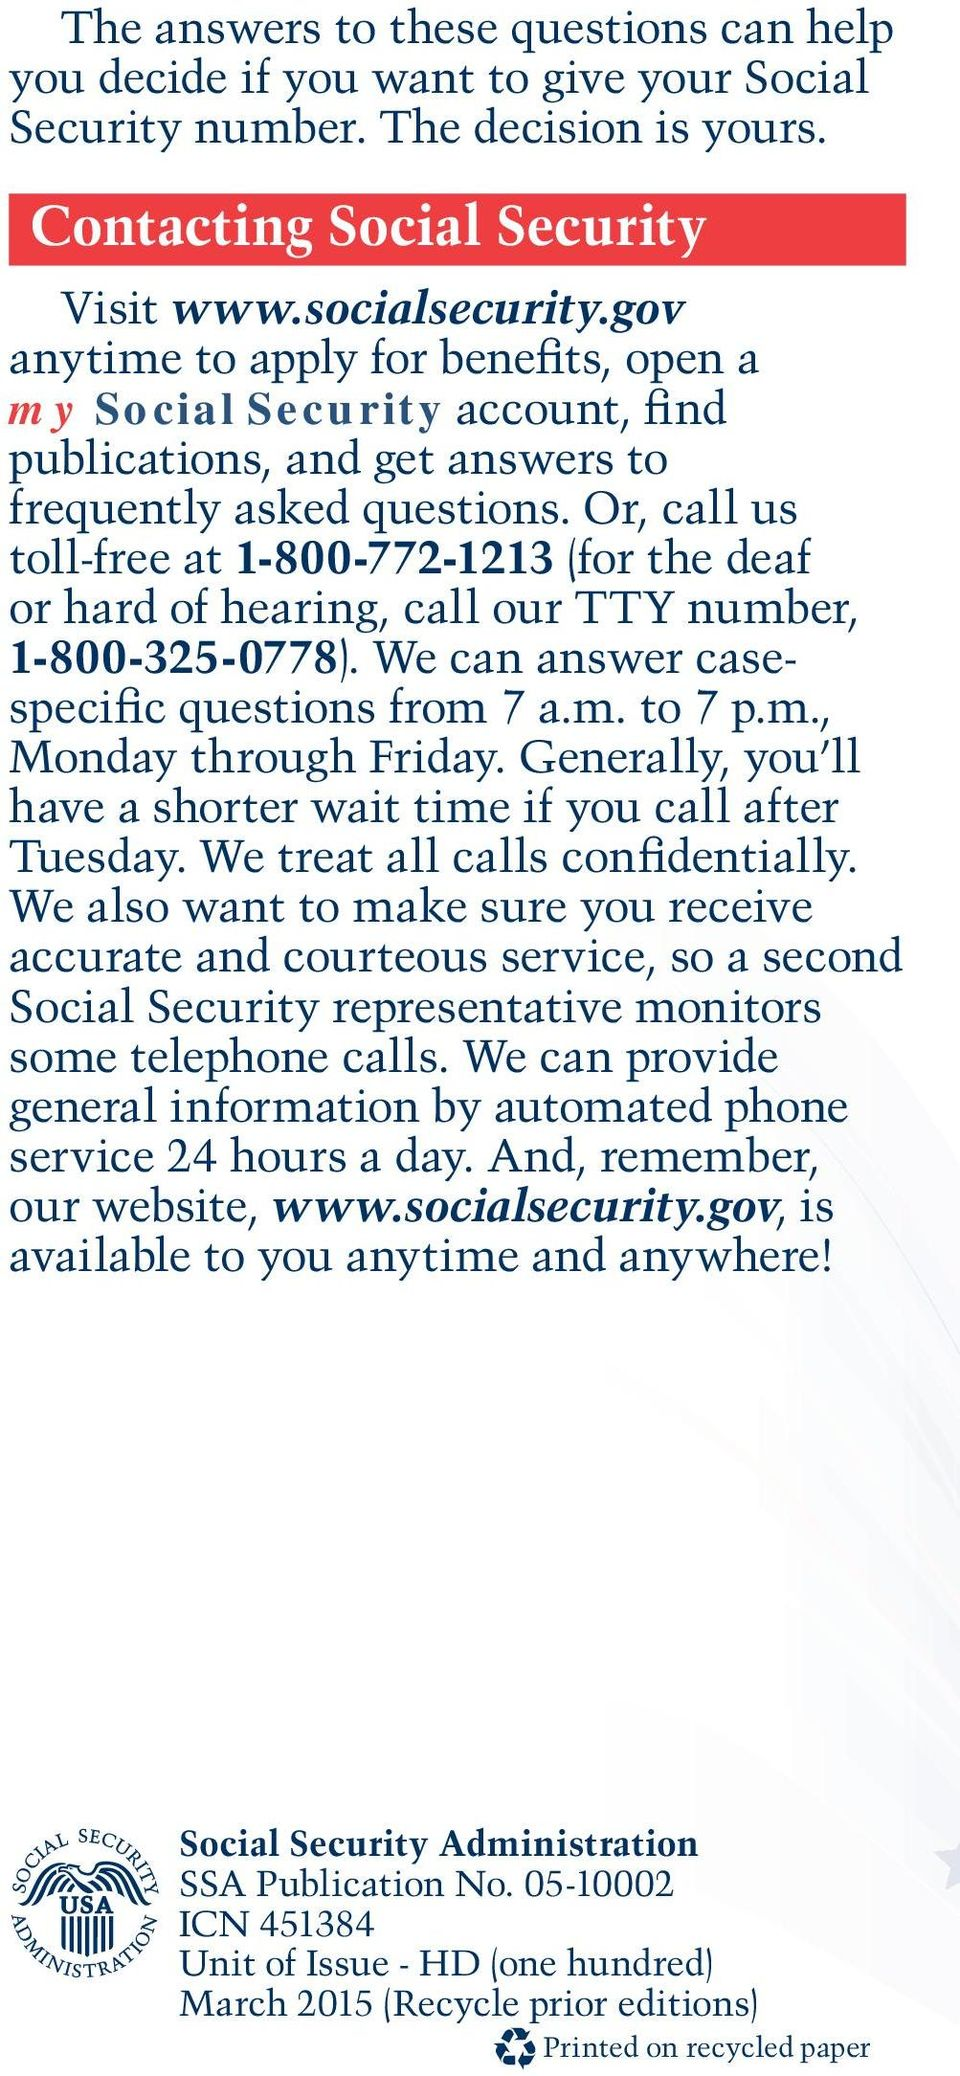 Or, call us toll-free at 1-800-772-1213 (for the deaf or hard of hearing, call our TTY number, 1-800-325-0778). We can answer casespecific questions from 7 a.m. to 7 p.m., Monday through Friday.